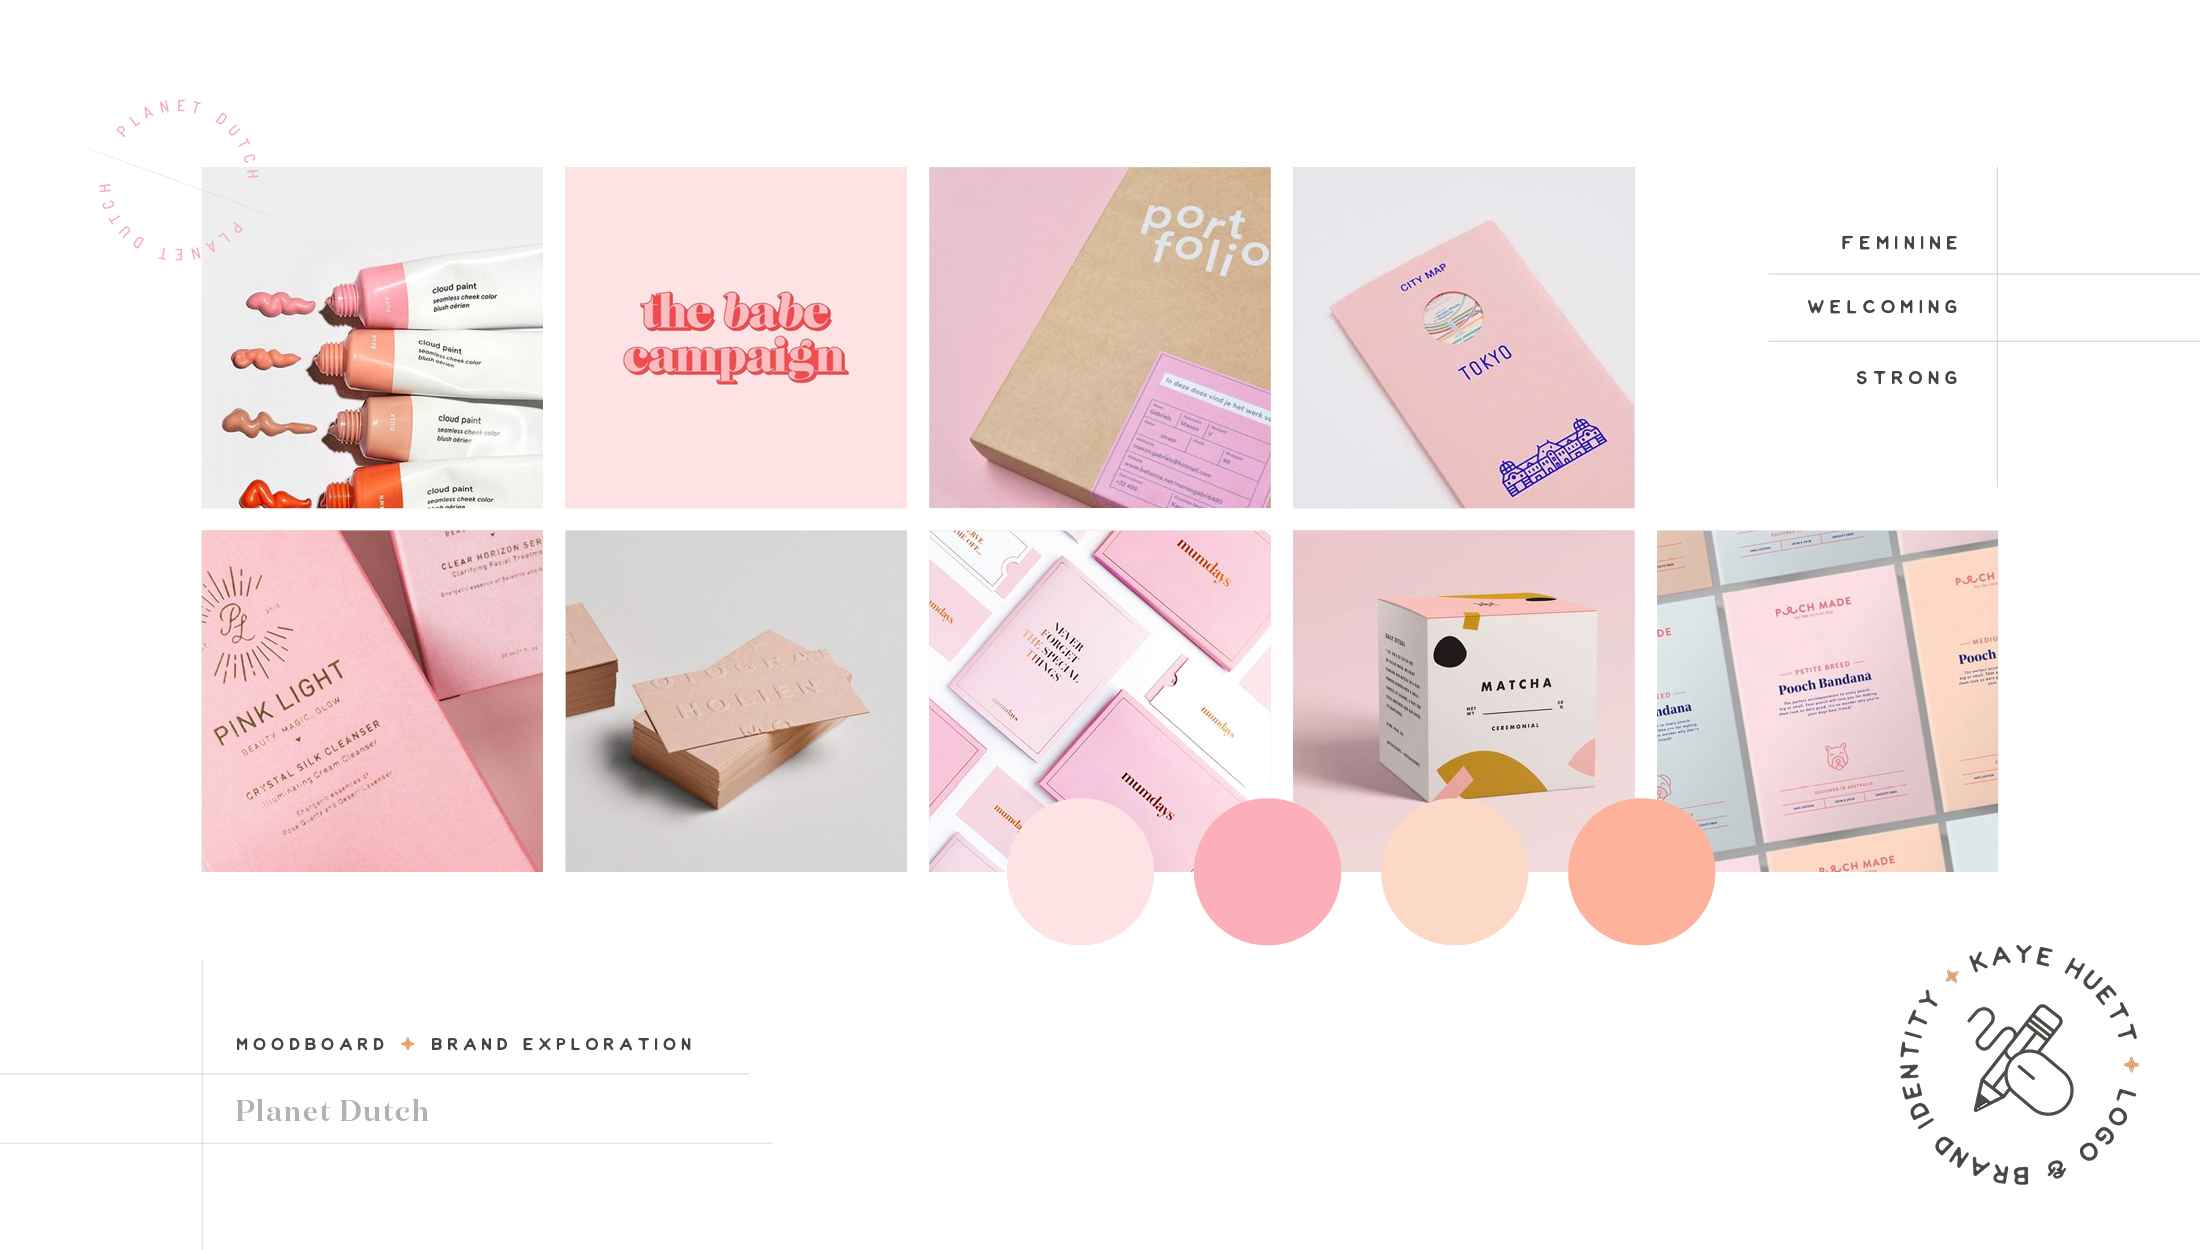 Moodboard for Planet Dutch, a community for expatriate women on how to survive in the Netherlands by learning their language & culture - designed by Wiltshire-based graphic designer, Kaye Huett